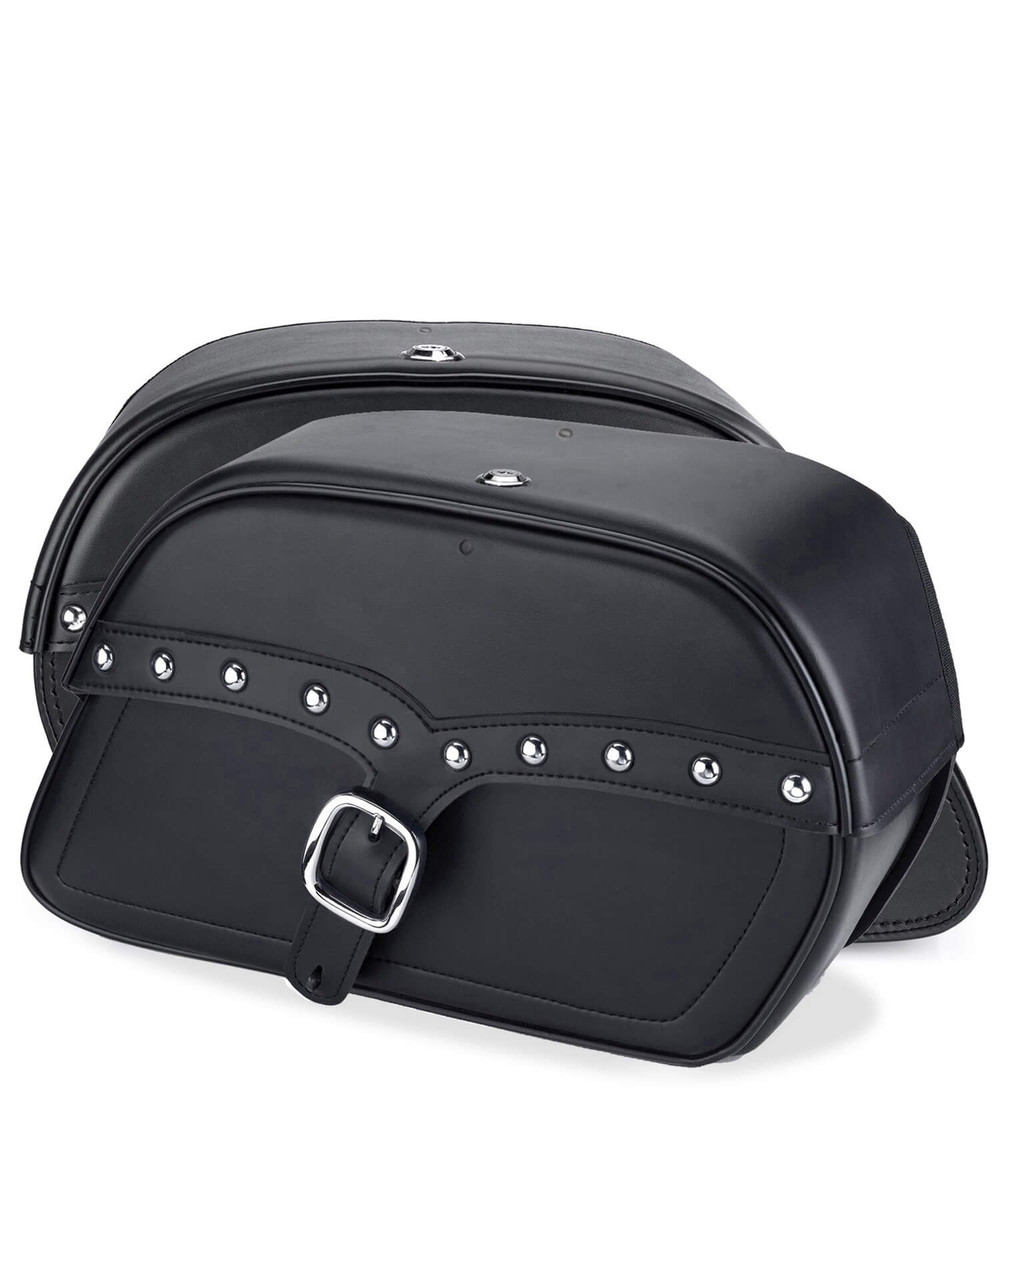 Viking shock Cutout Slanted Studded SS Large Motorcycle Saddlebags For Harley Dyna Switchback Both Bags View